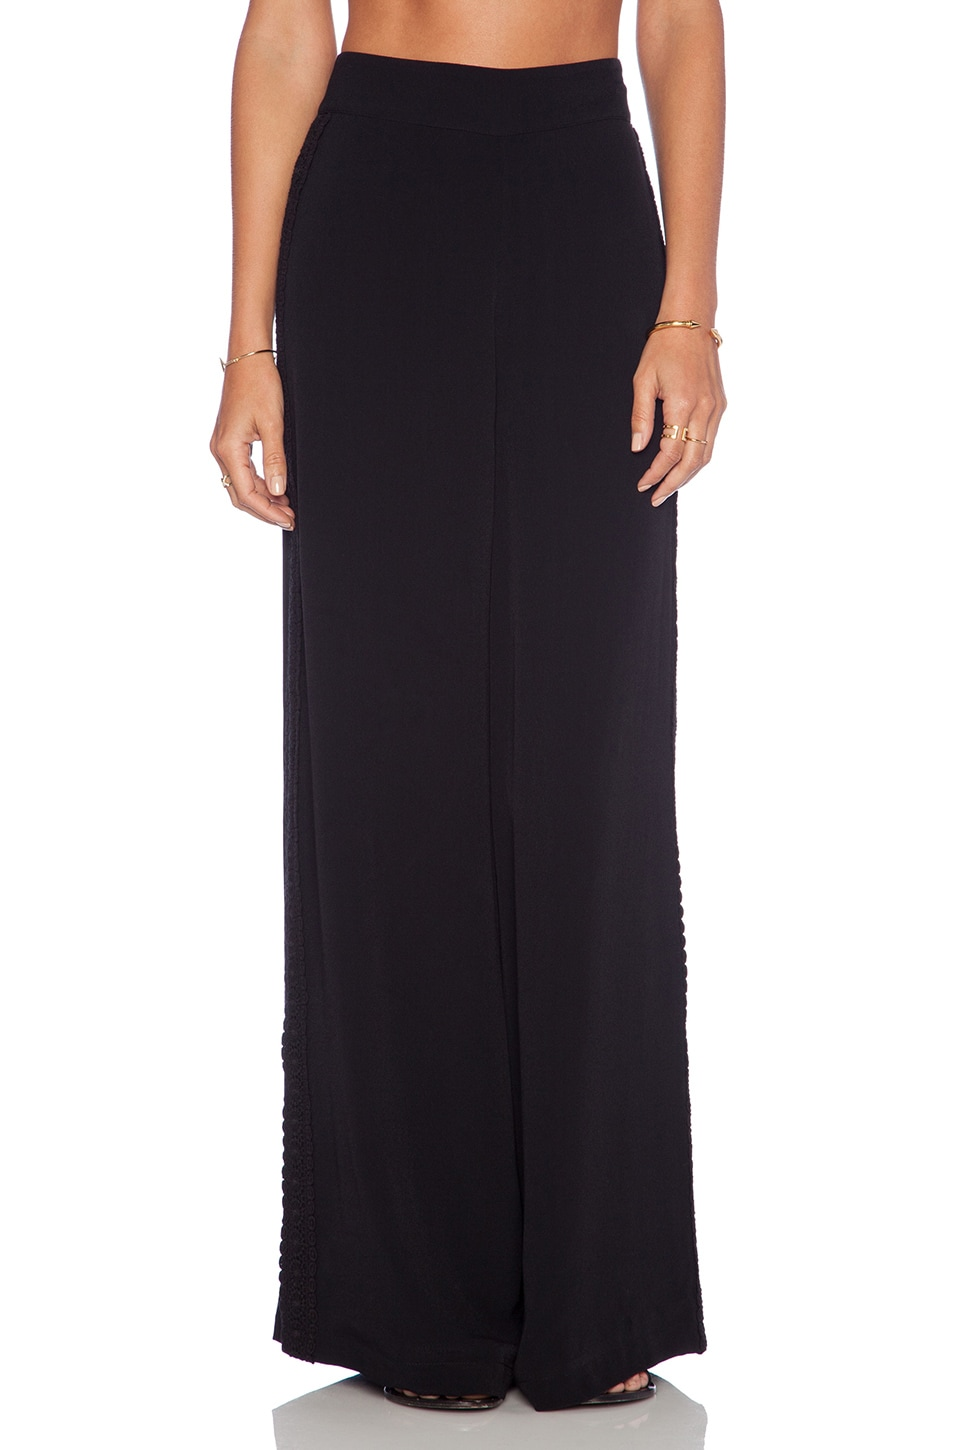 Lovers + Friends Jhene Aiko for Lovers and Friends Willow Pants in Black